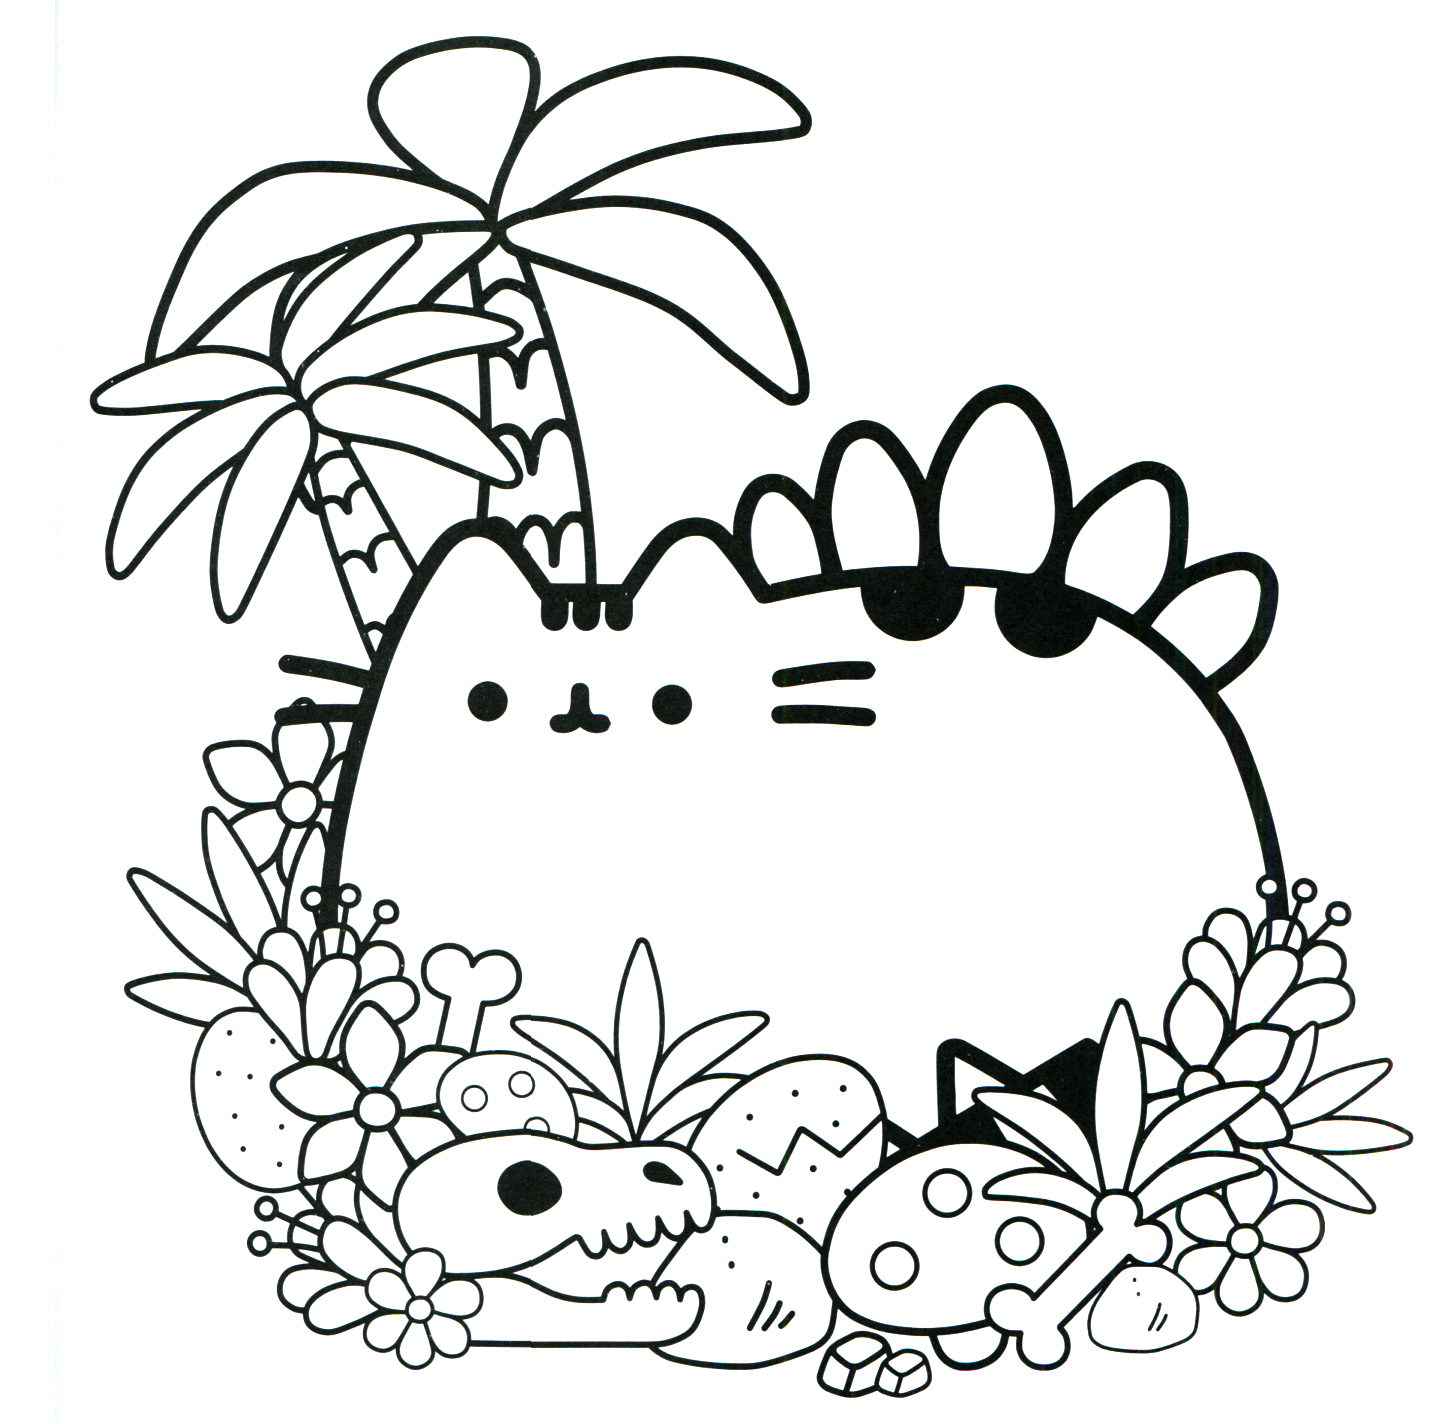 Pusheen Coloring Book Pusheen Pusheen the Cat | Pusheen Coloring ...